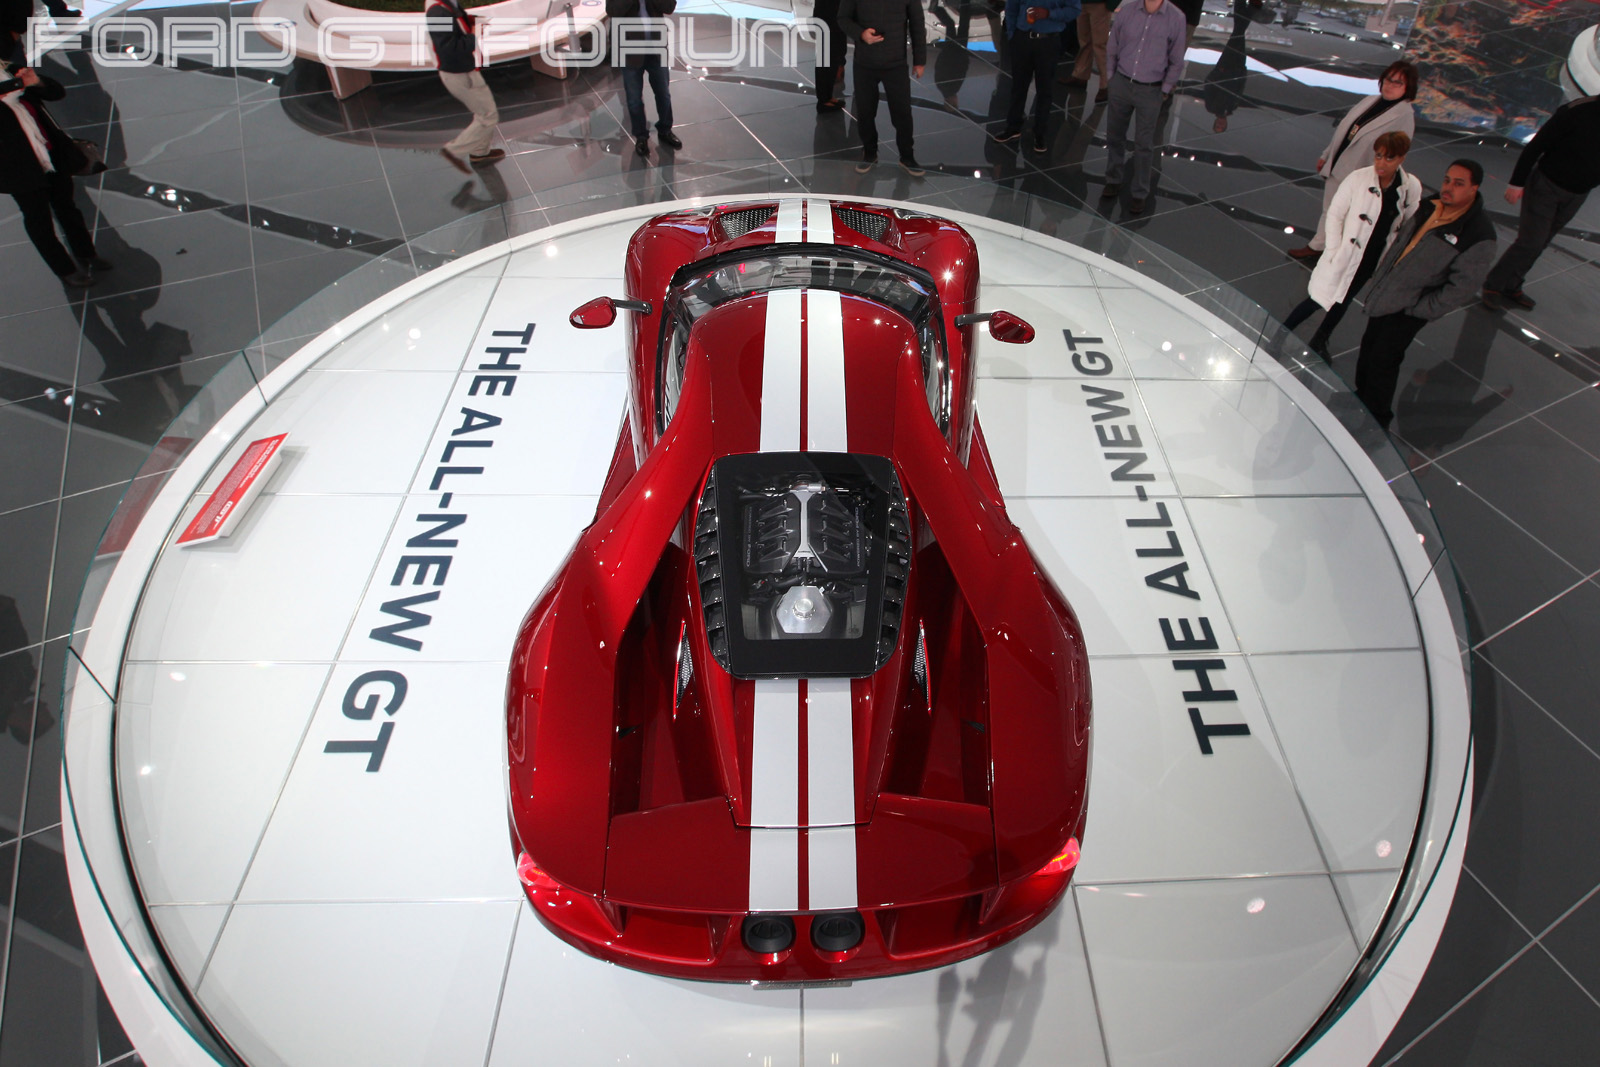 Ford-GT-Autoshow-3000-2